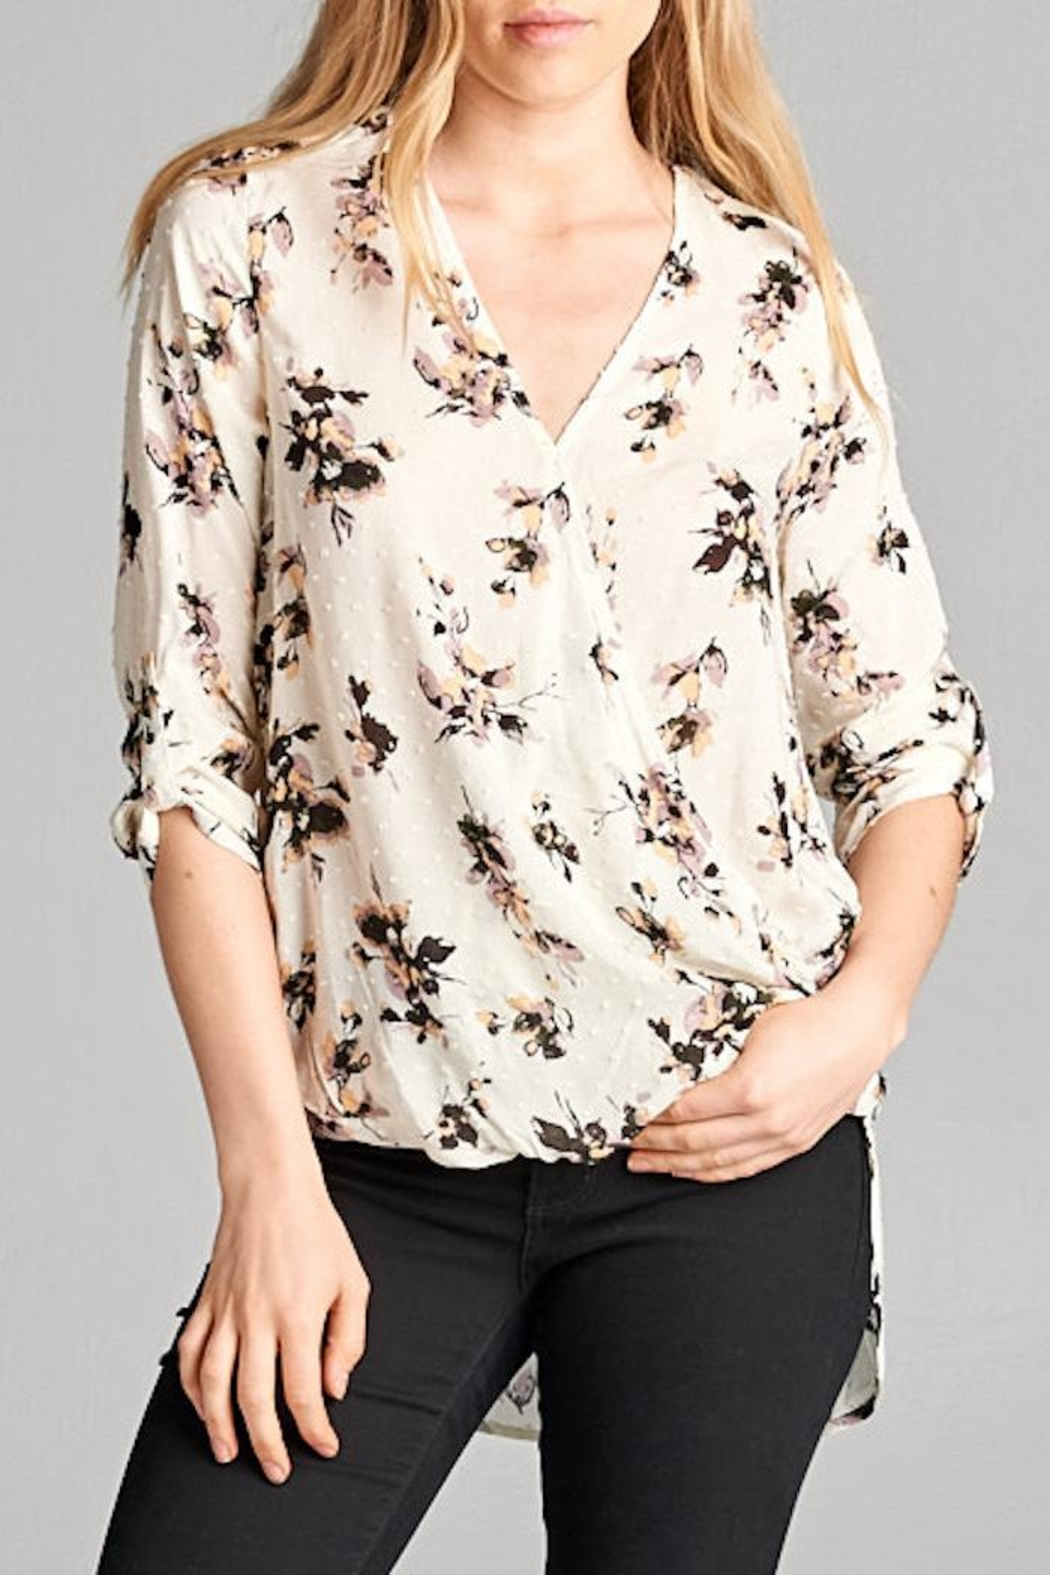 63431f7c82ba7 Wrap Blouse With Collar – Rockwall Auction